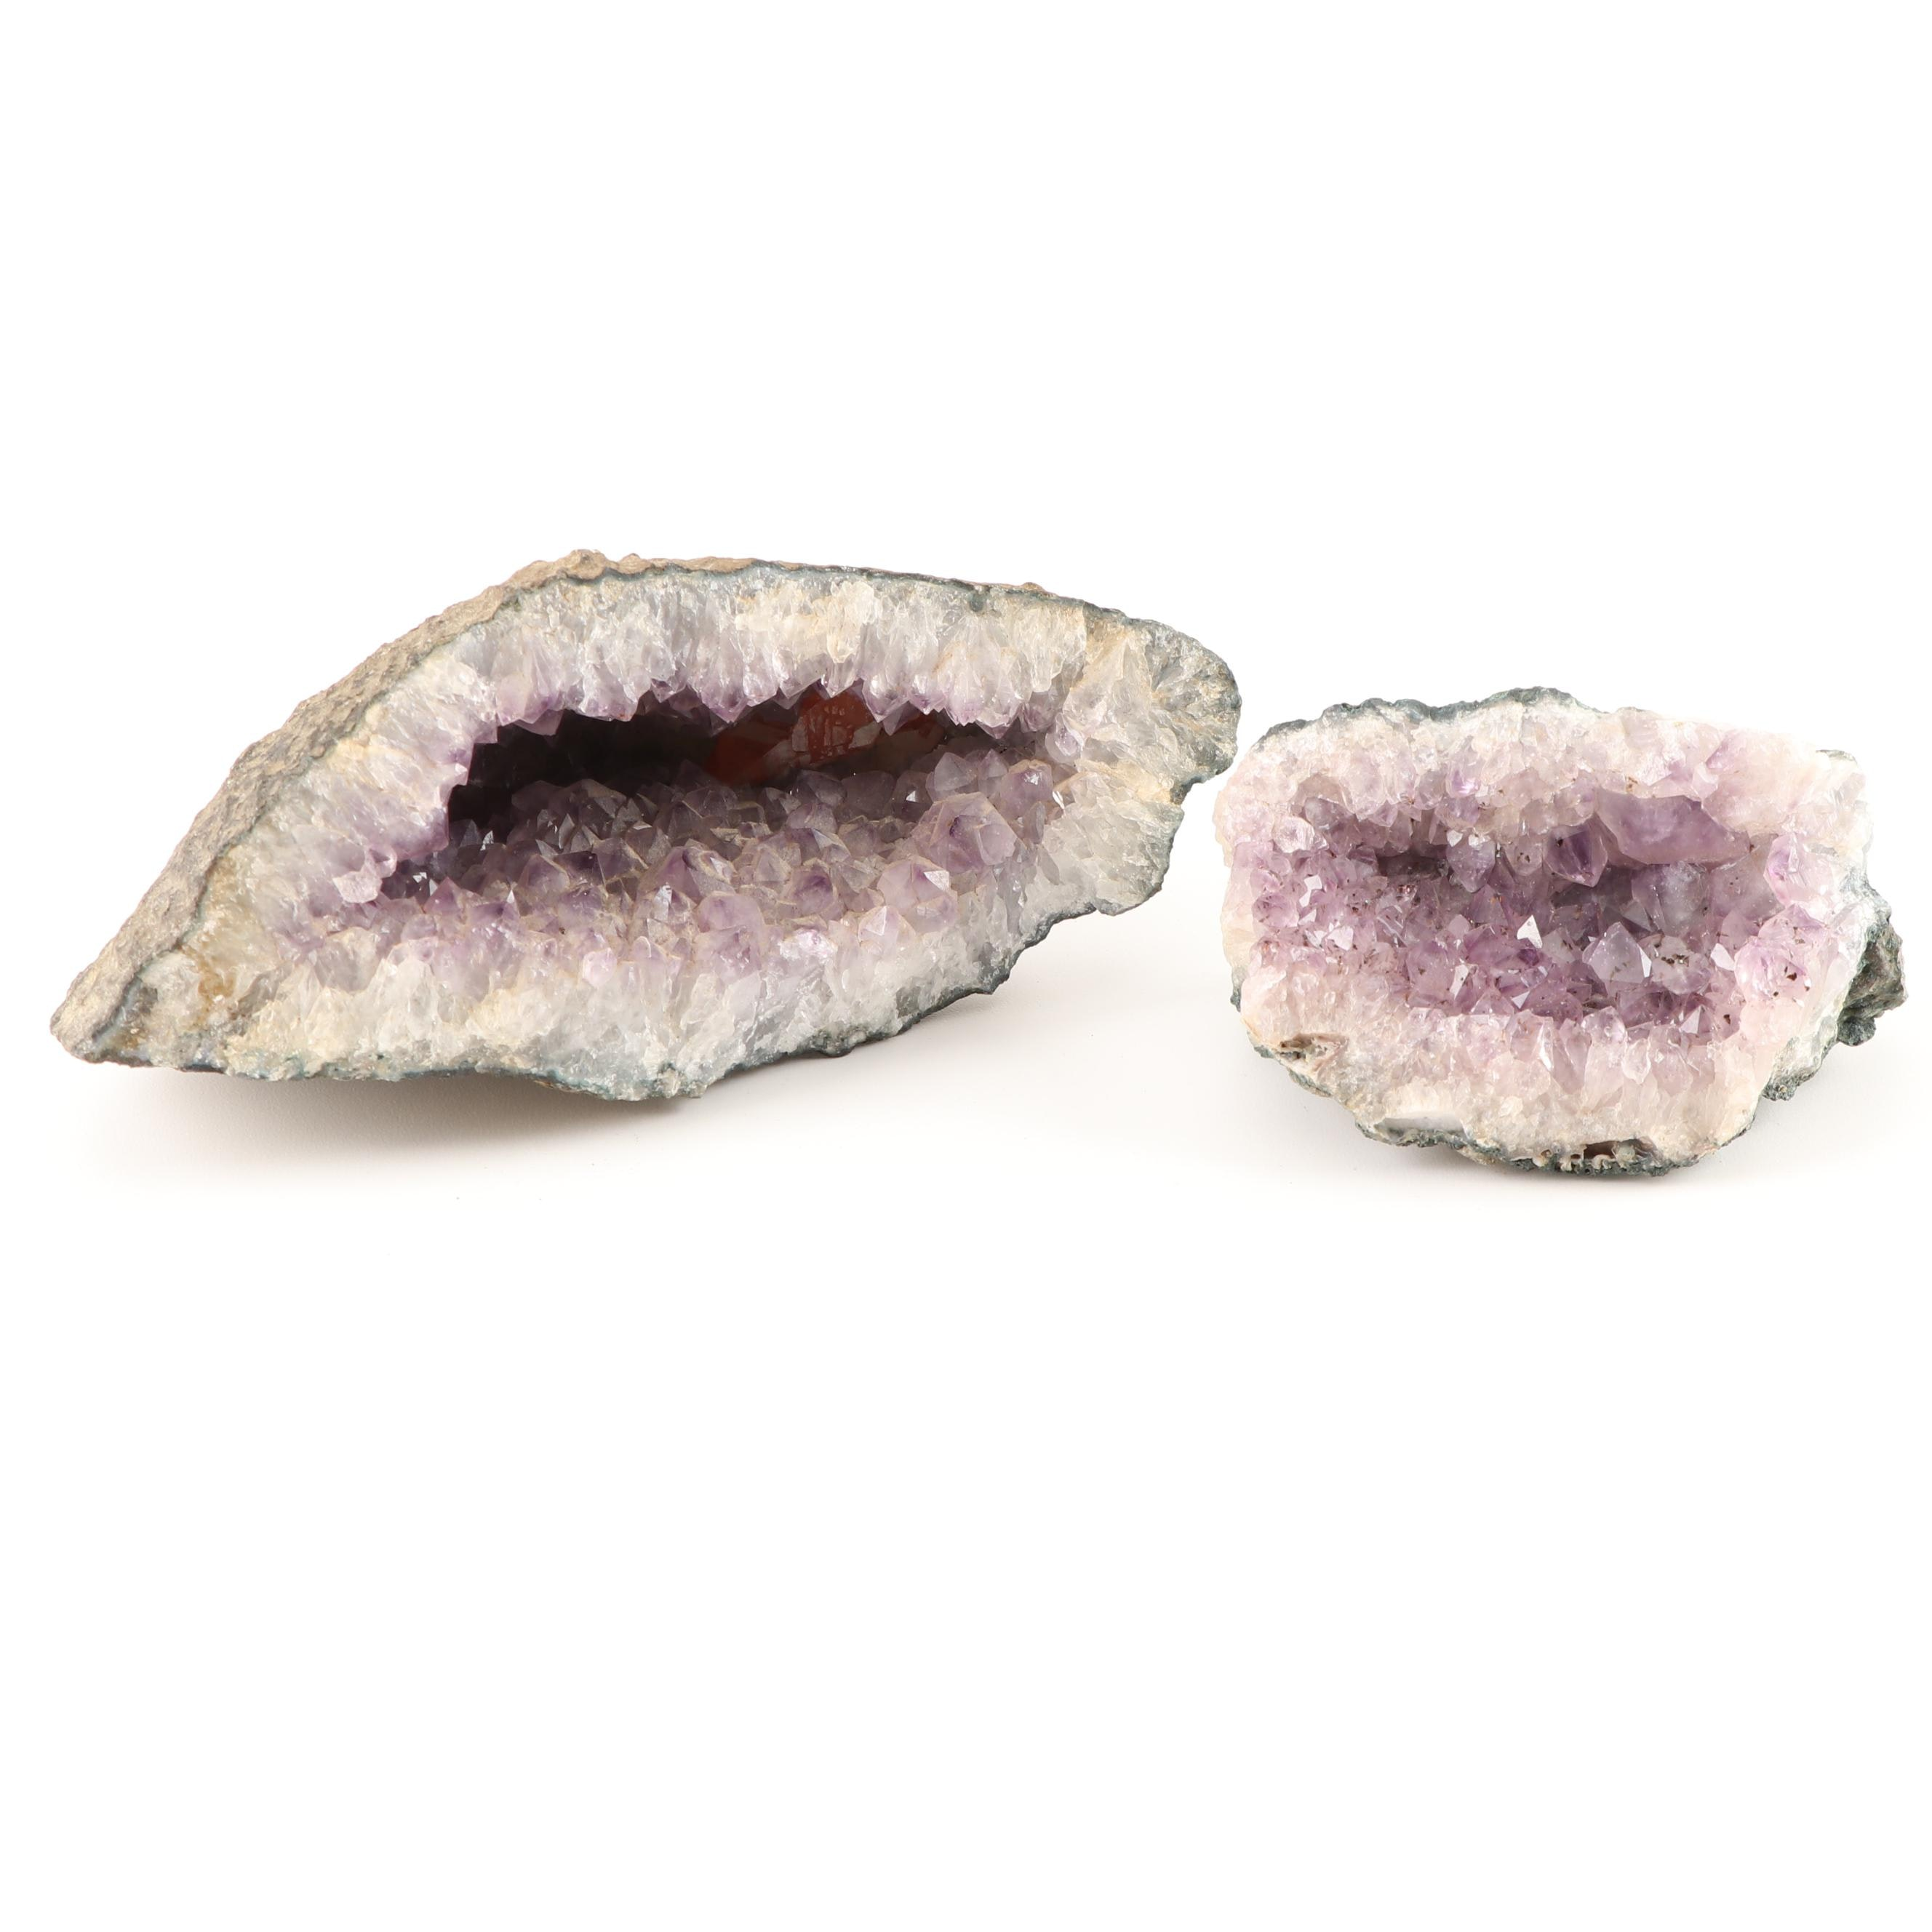 Natural Amethyst Crystal Specimen Grouping